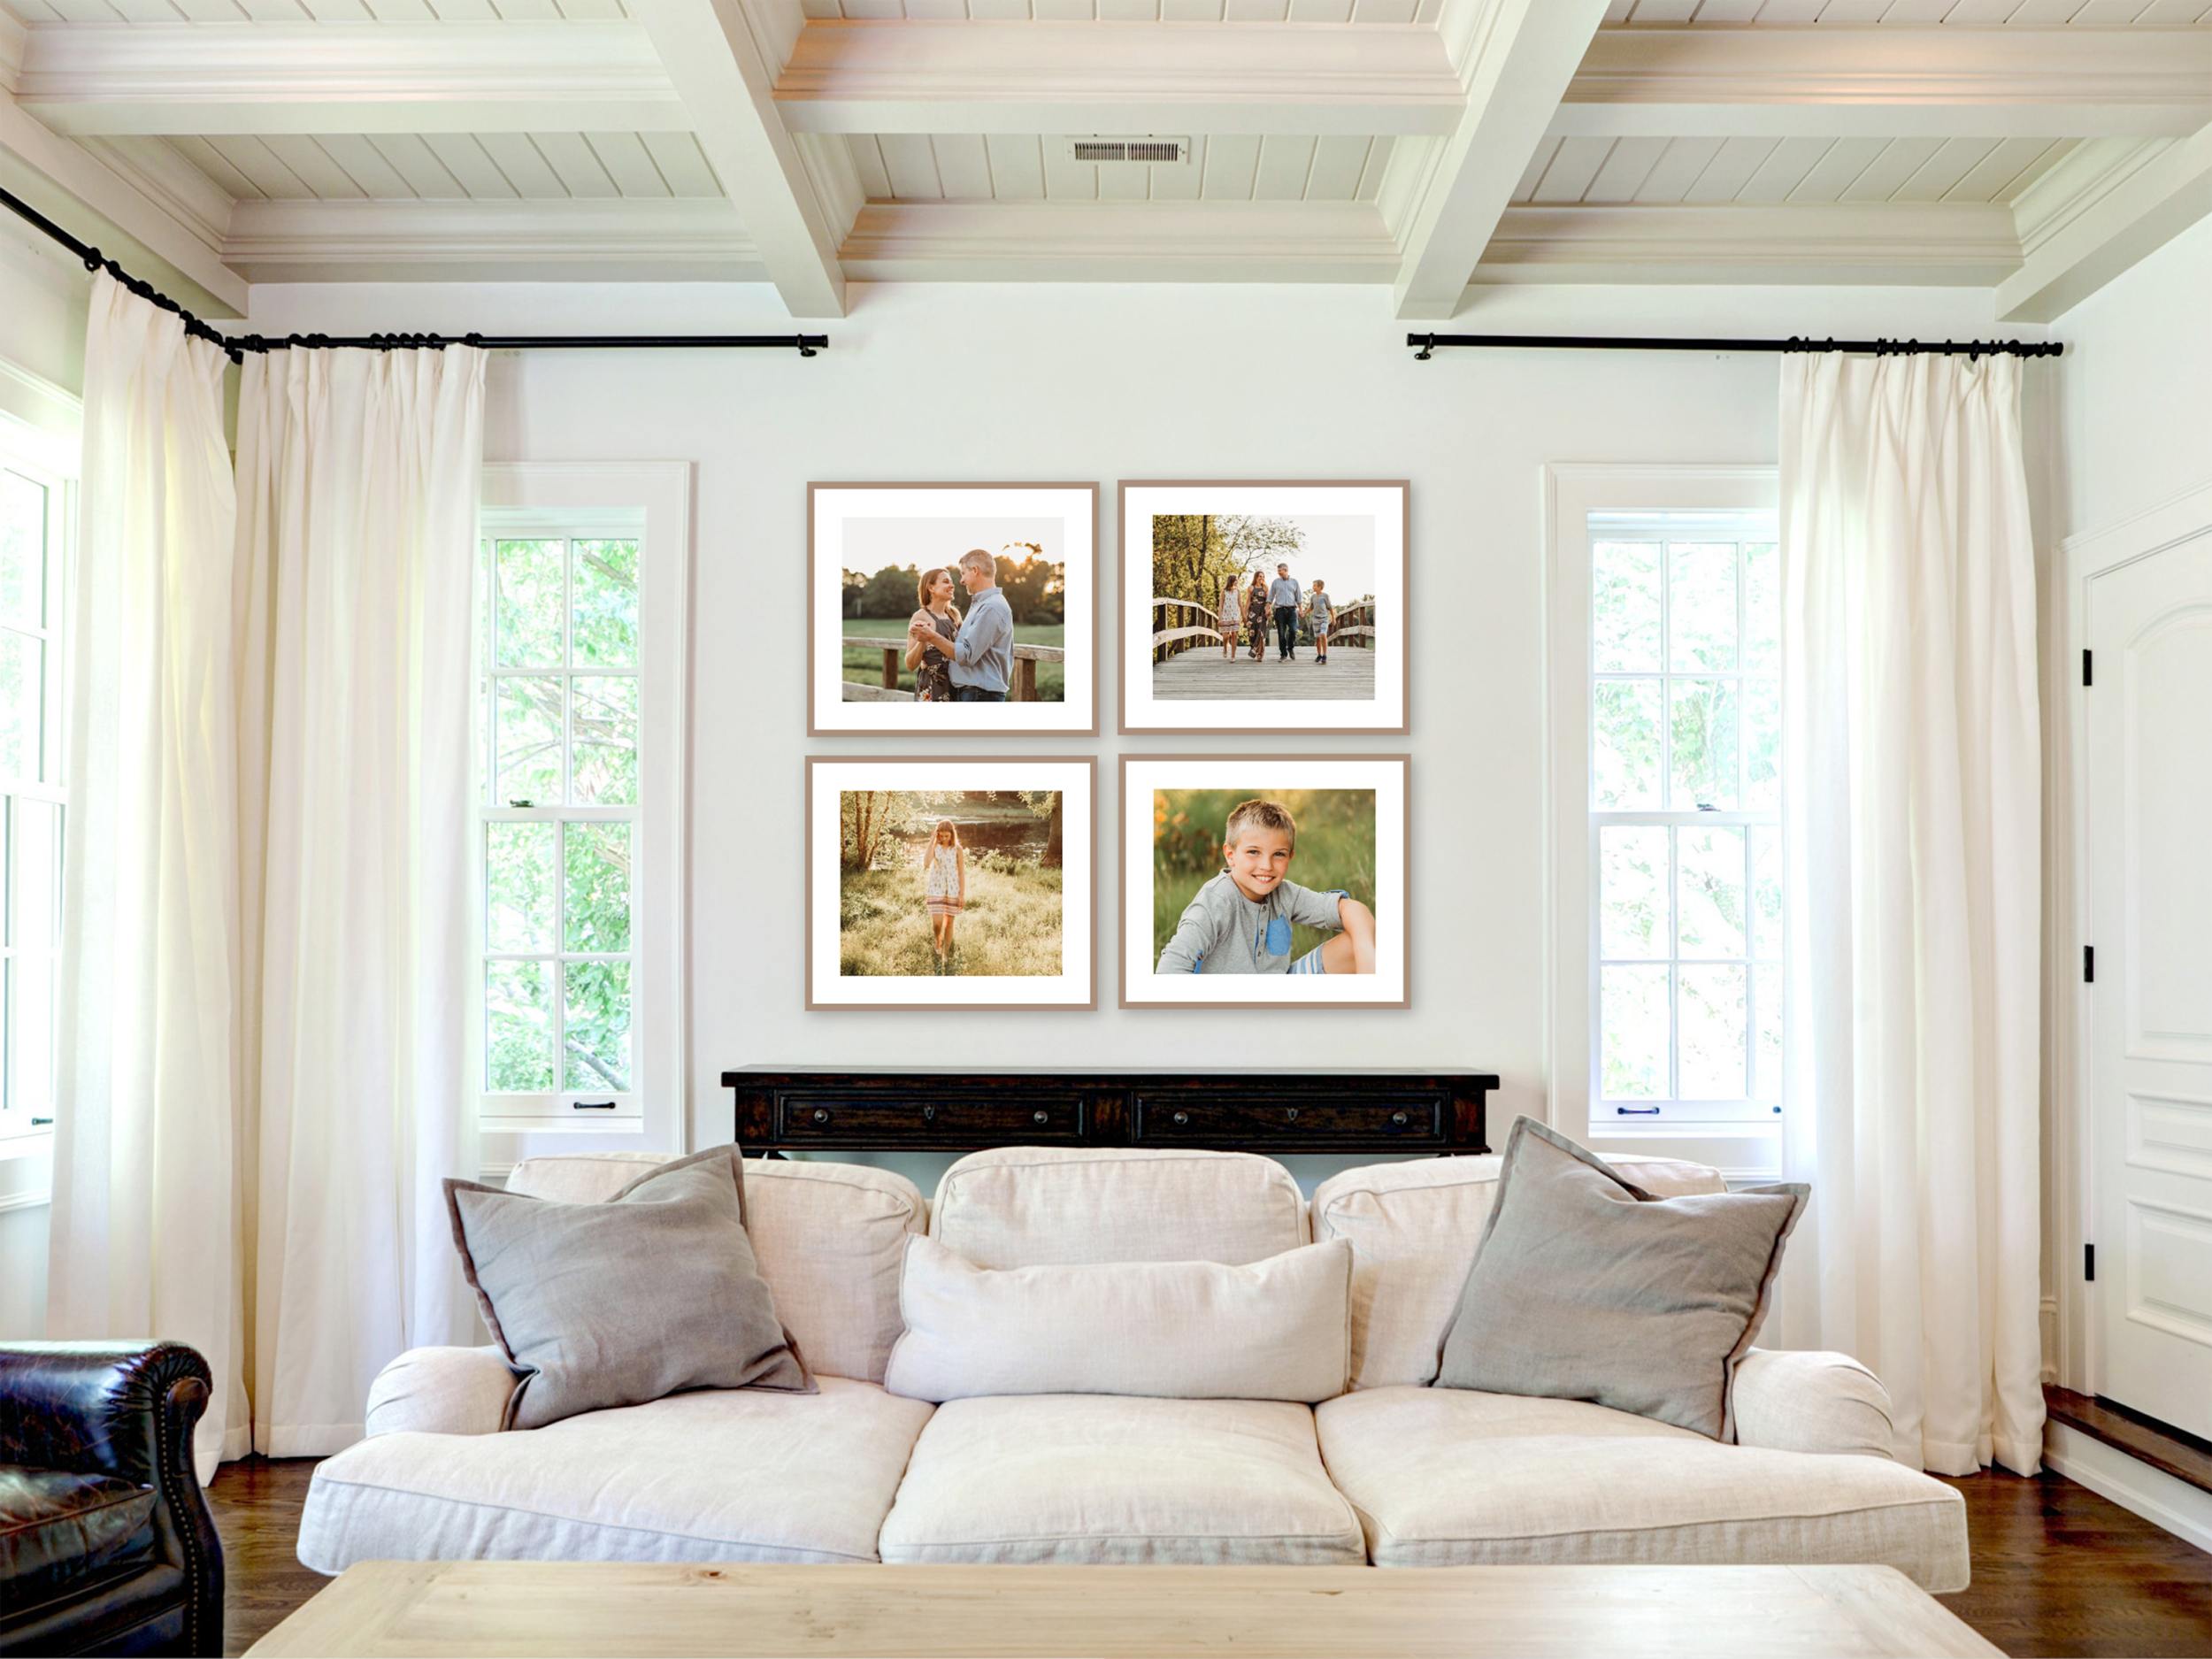 Gallery wall from a family photography session in a client's living room in Sudbury, Massachusetts.